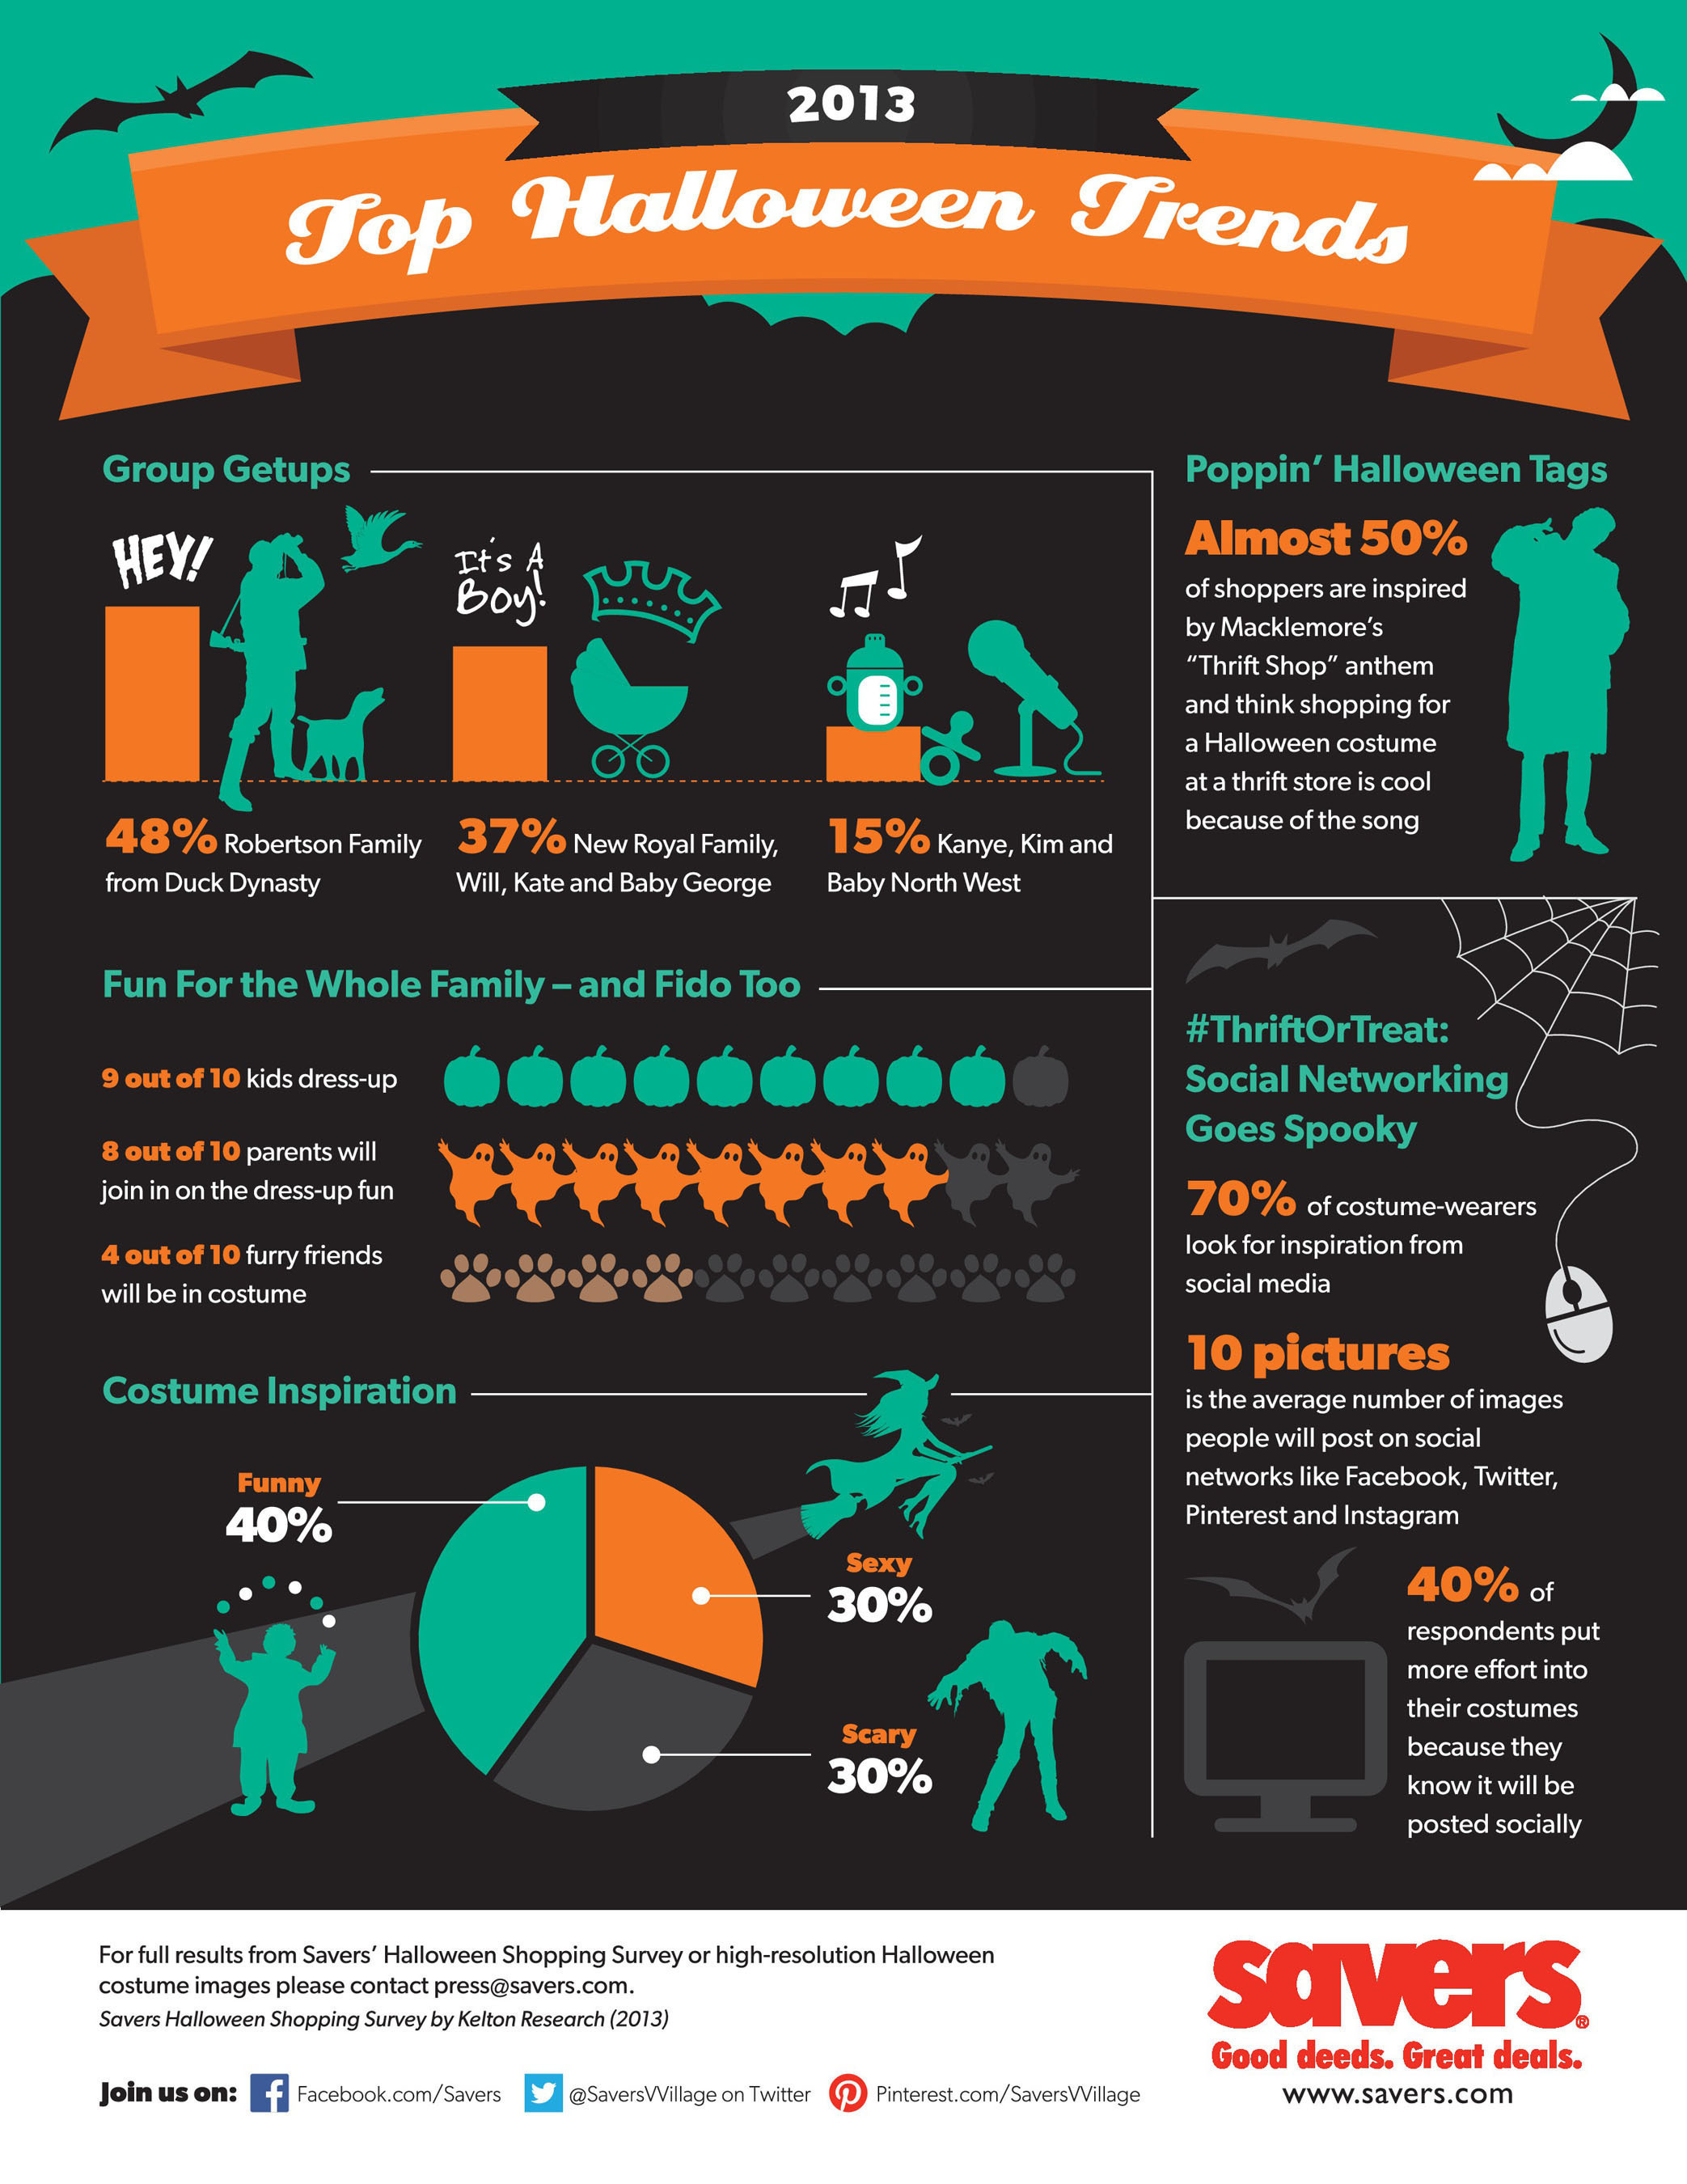 Savers 2013 Top Halloween Trends- Annual Survey Data.  (PRNewsFoto/Savers, Inc.)